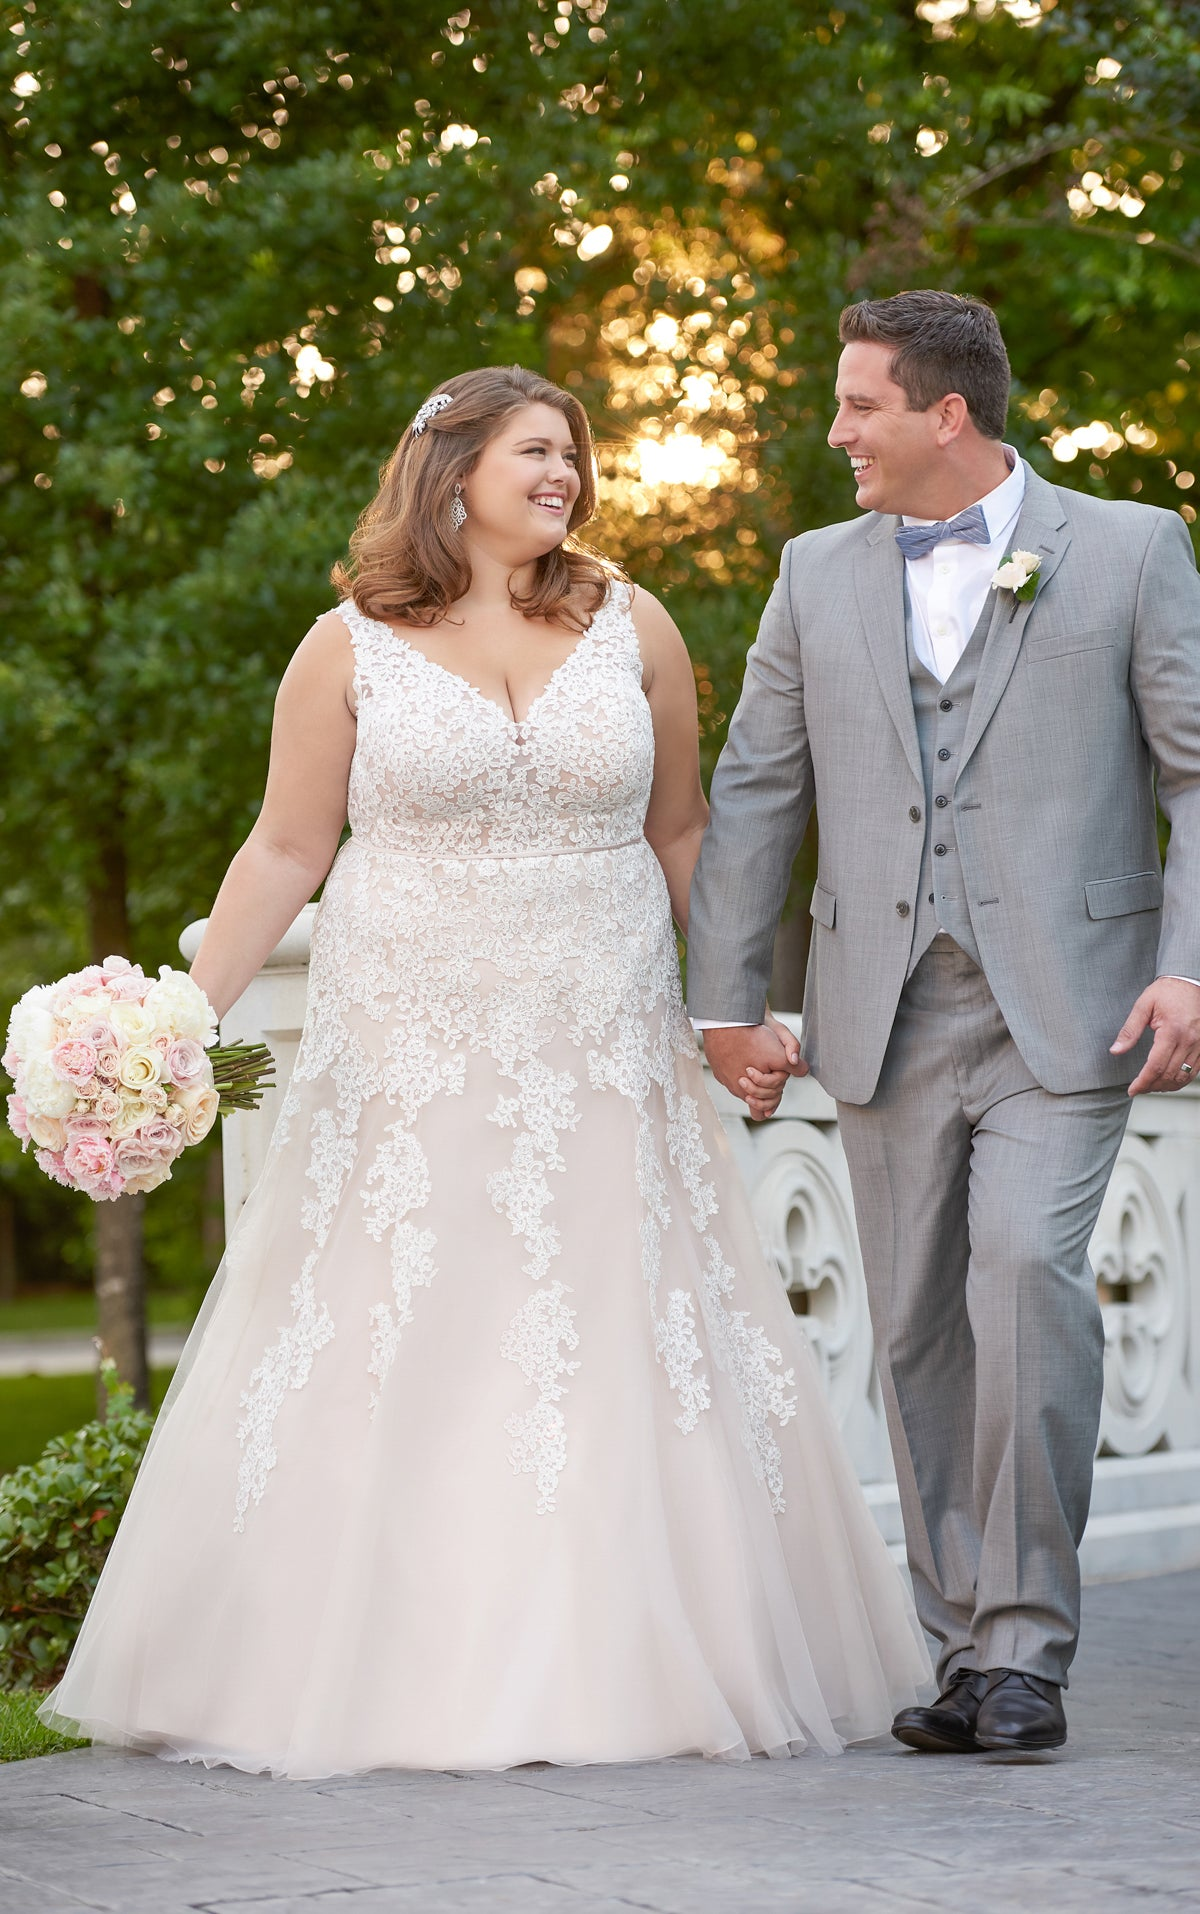 Lace Is One Of The Most Requested Details On A Wedding Dress From Rustic Chic To Bohemian Elegance Sure Add Perfect Touch Any